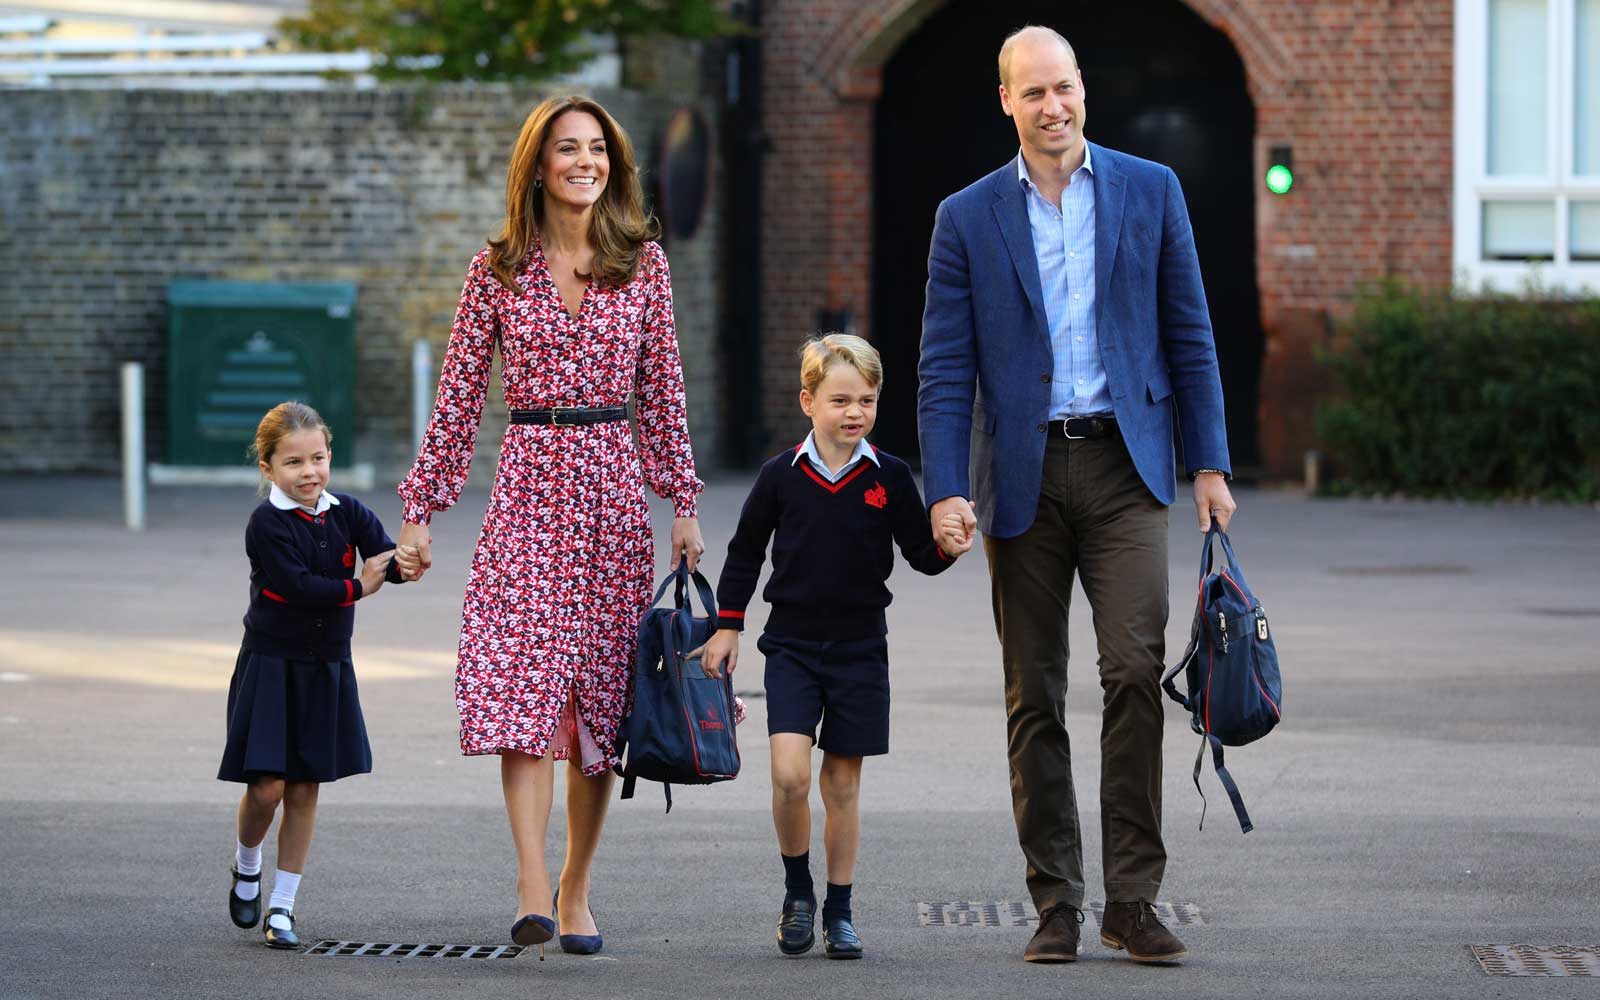 Royal Family - Duke and Duchess of Cambridge with Prince George and Princess Charlotte